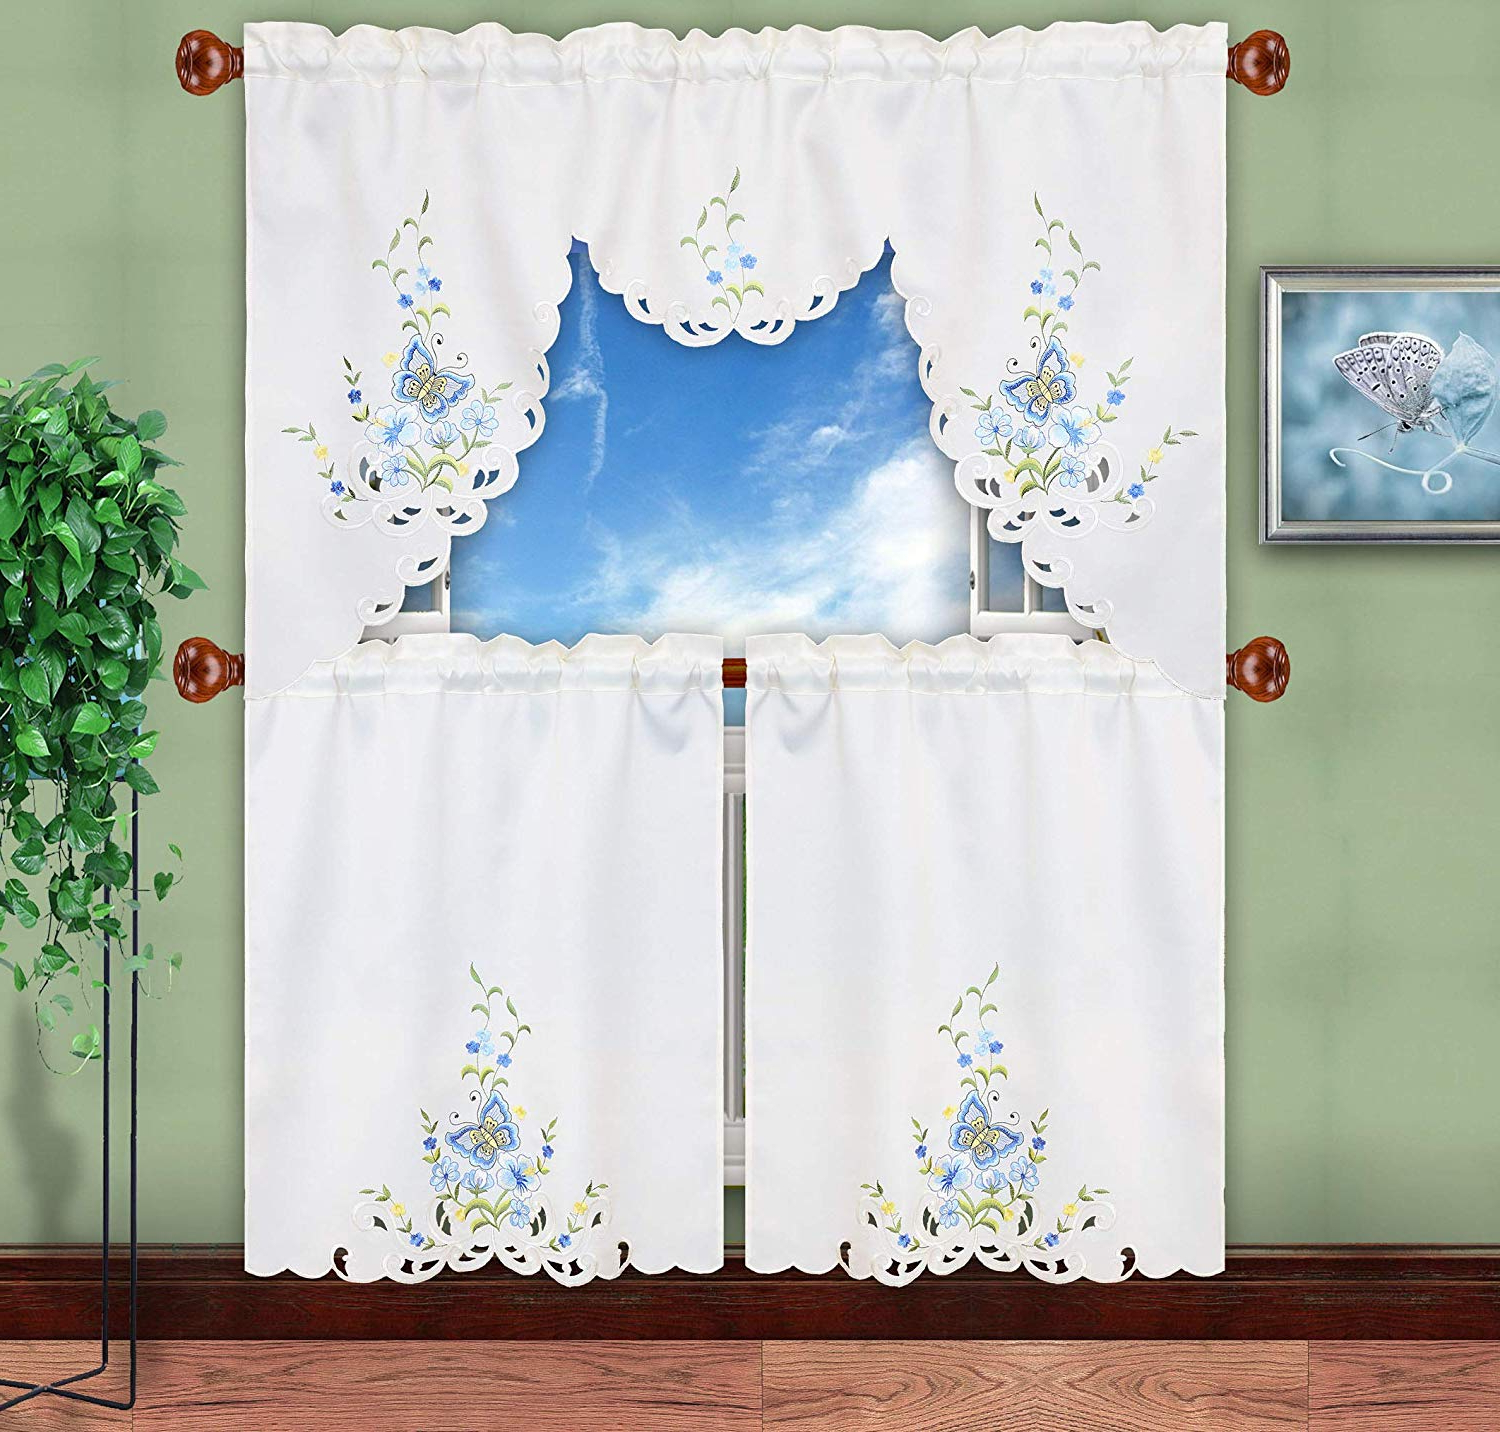 Spring Daisy Tiered Curtain 3 Piece Sets Intended For Current Simhomsen Embroidered Butterfly Kitchen Curtain Swag And Tiers Set For  Spring And Summer, Window Treatment, Decorations (Blue) (View 15 of 20)